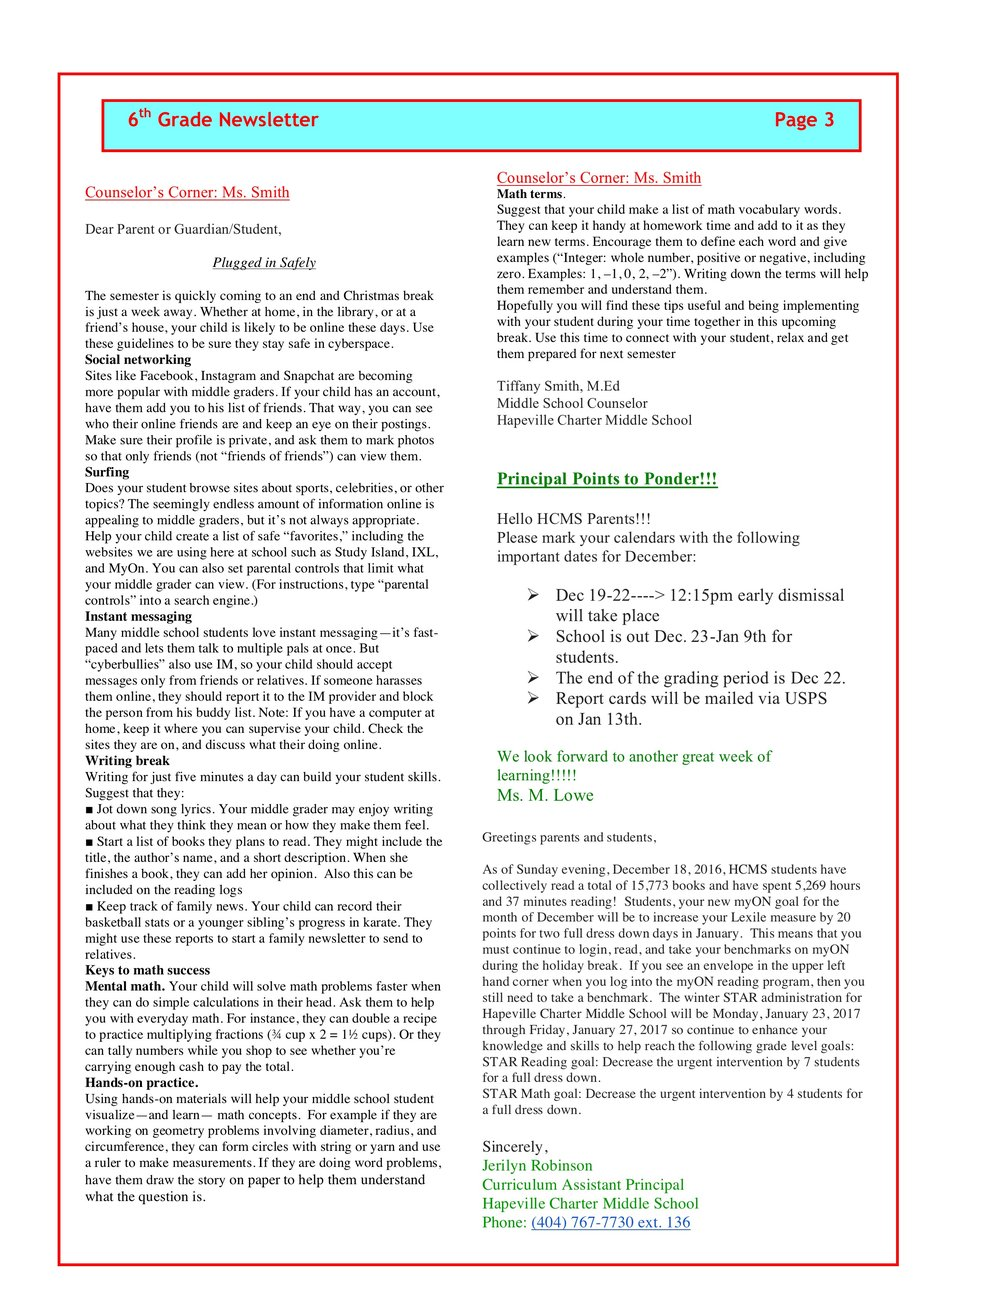 Newsletter Image6th Grade Newsletter 12-19-2016 3.jpeg